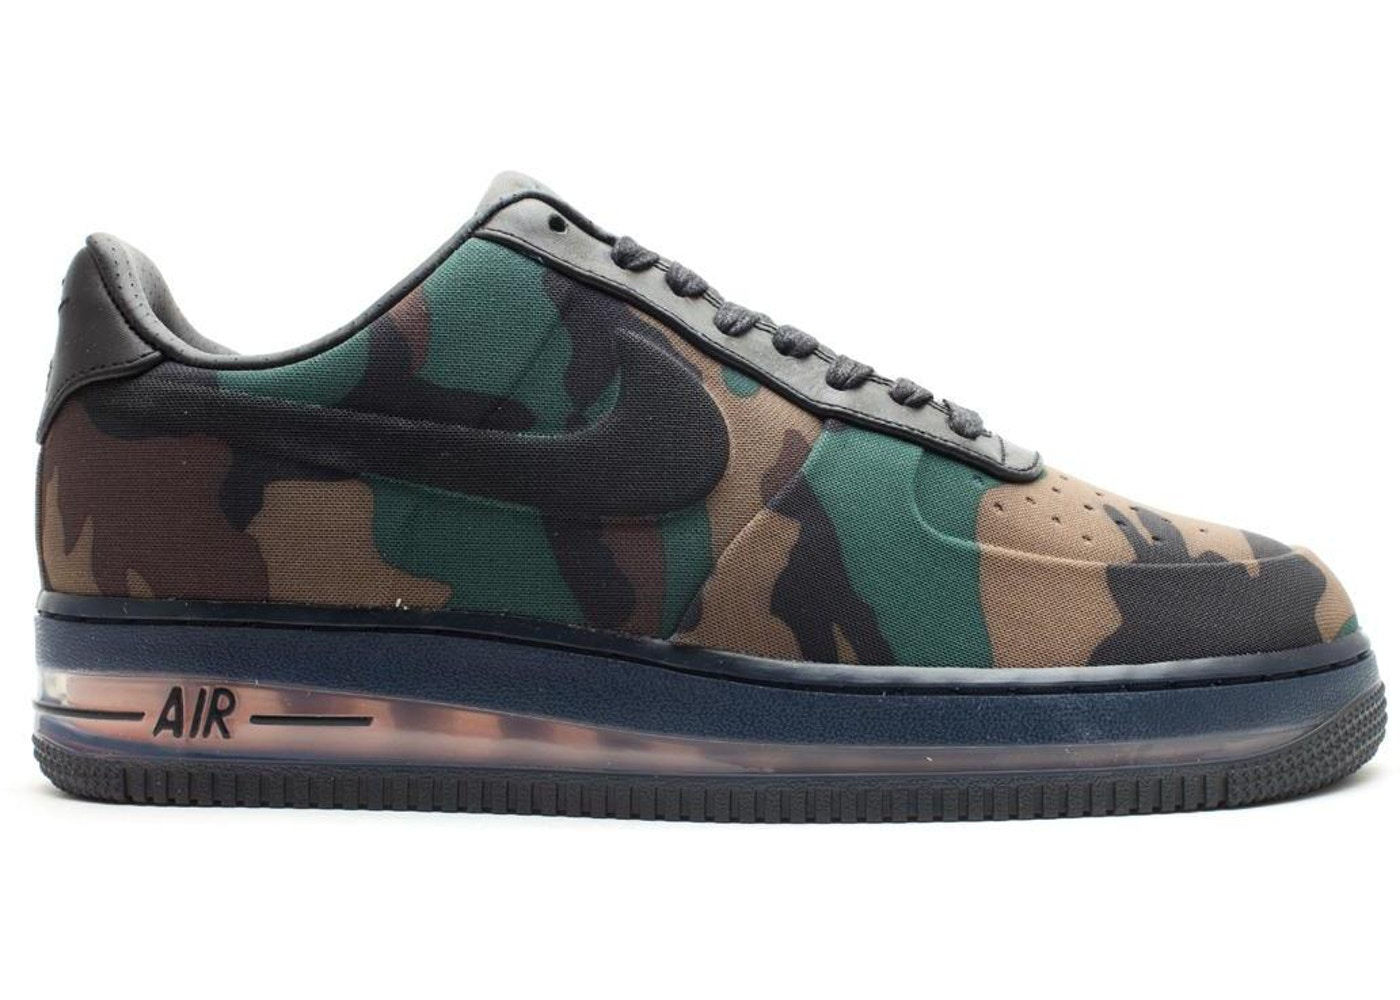 b7013a9fb60eb Sell. or Ask. Size: 10.5. View All Bids. Air Force 1 Low Max Air VT Camo